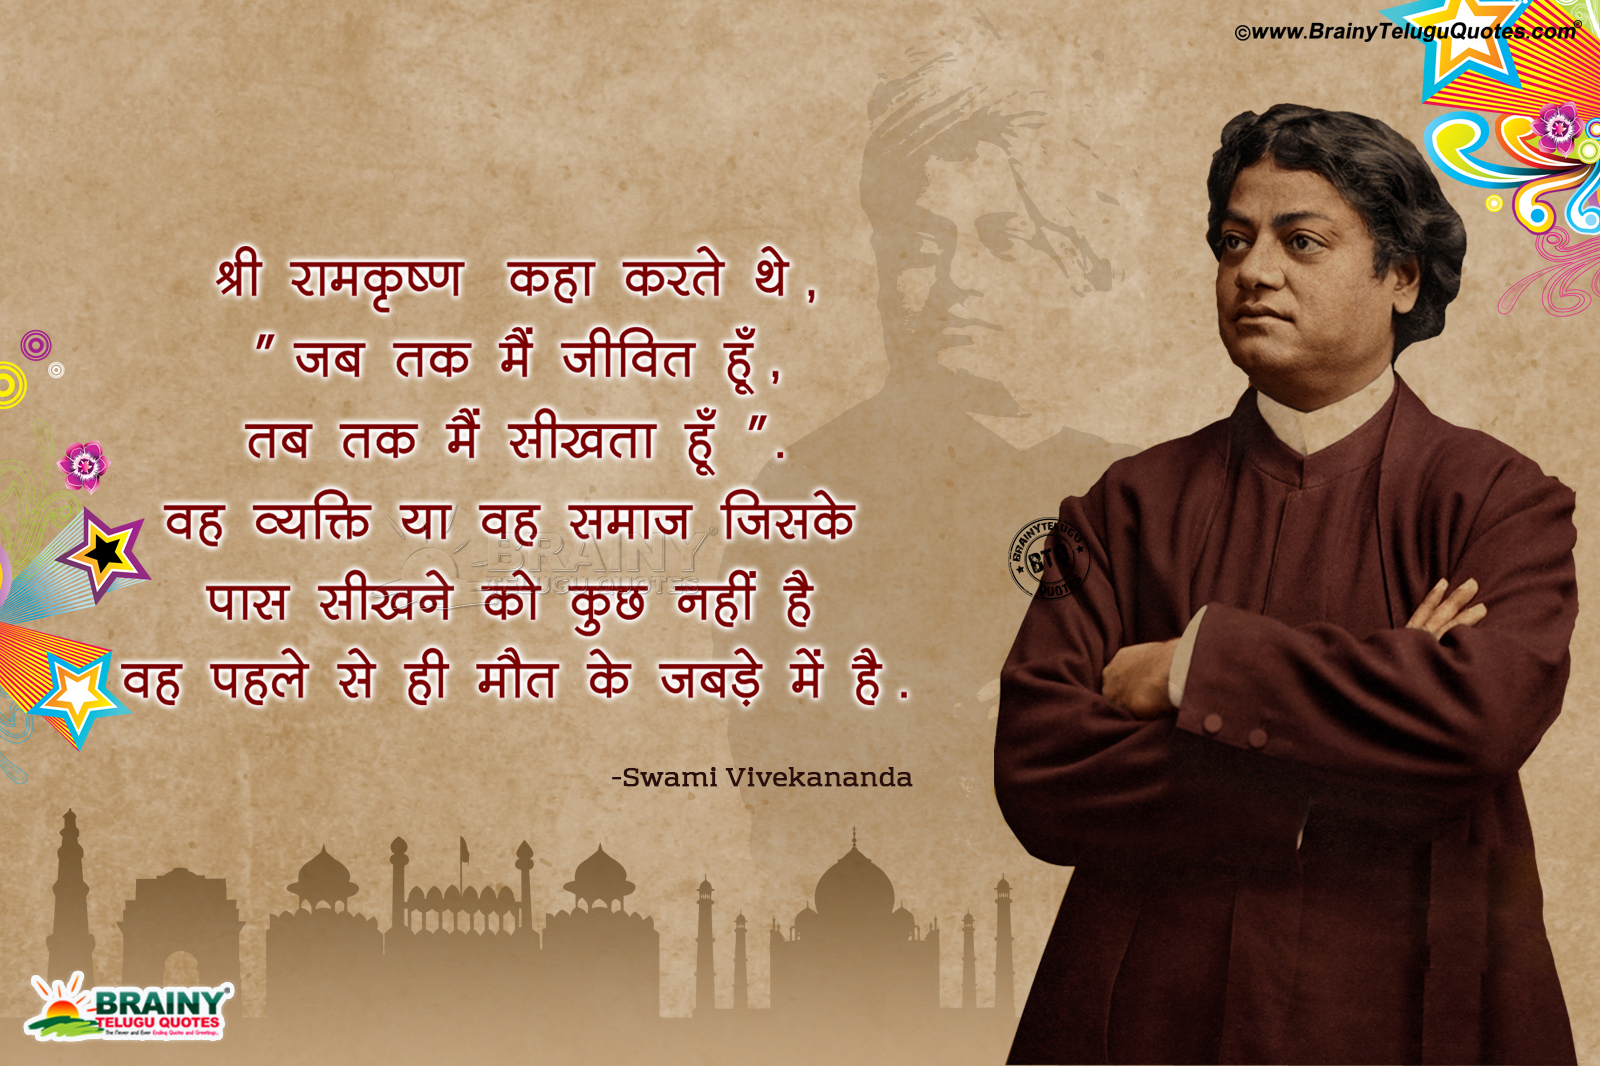 Swami Vivekananda Quotes Hd Wallpapers In Hindi, Motivational - Swami Vivekananda Quotes Hd - HD Wallpaper